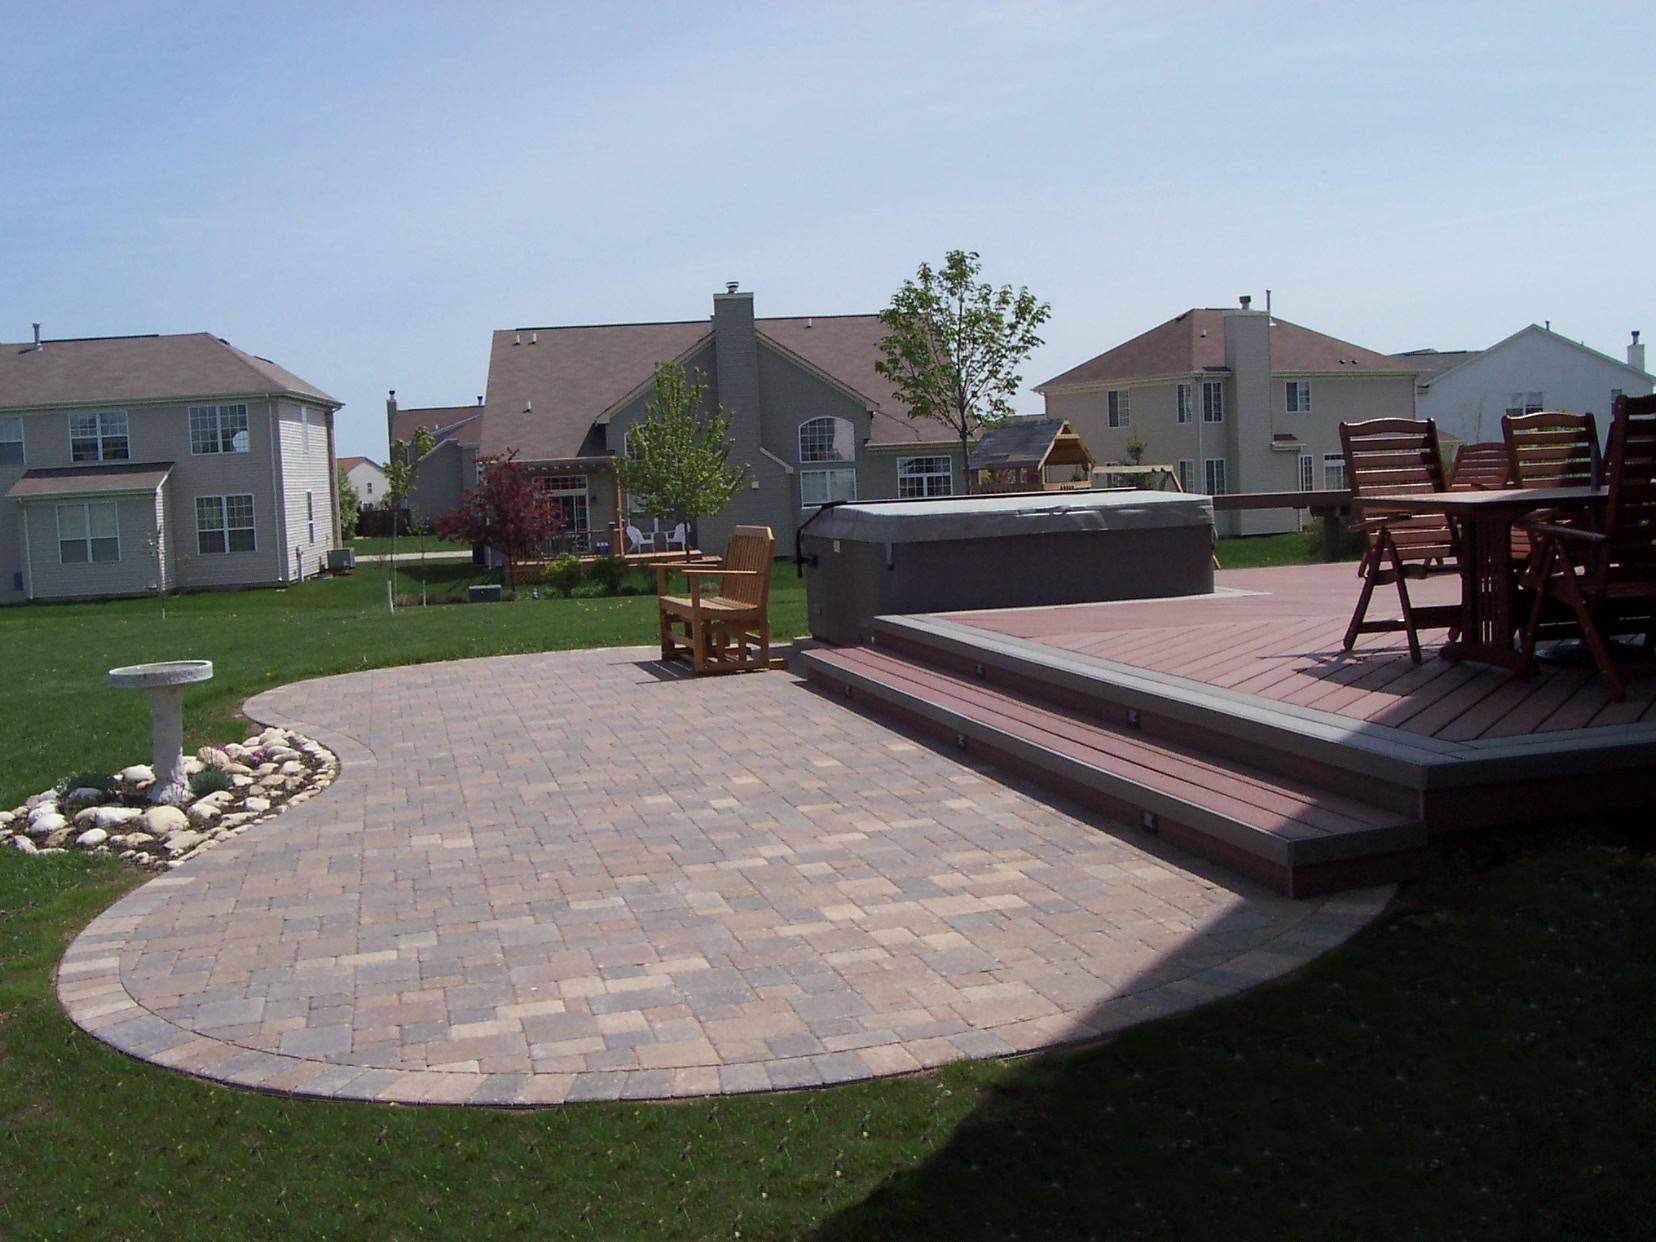 paver patios design and installation columbus ? columbus decks ... - Deck Patio Designs